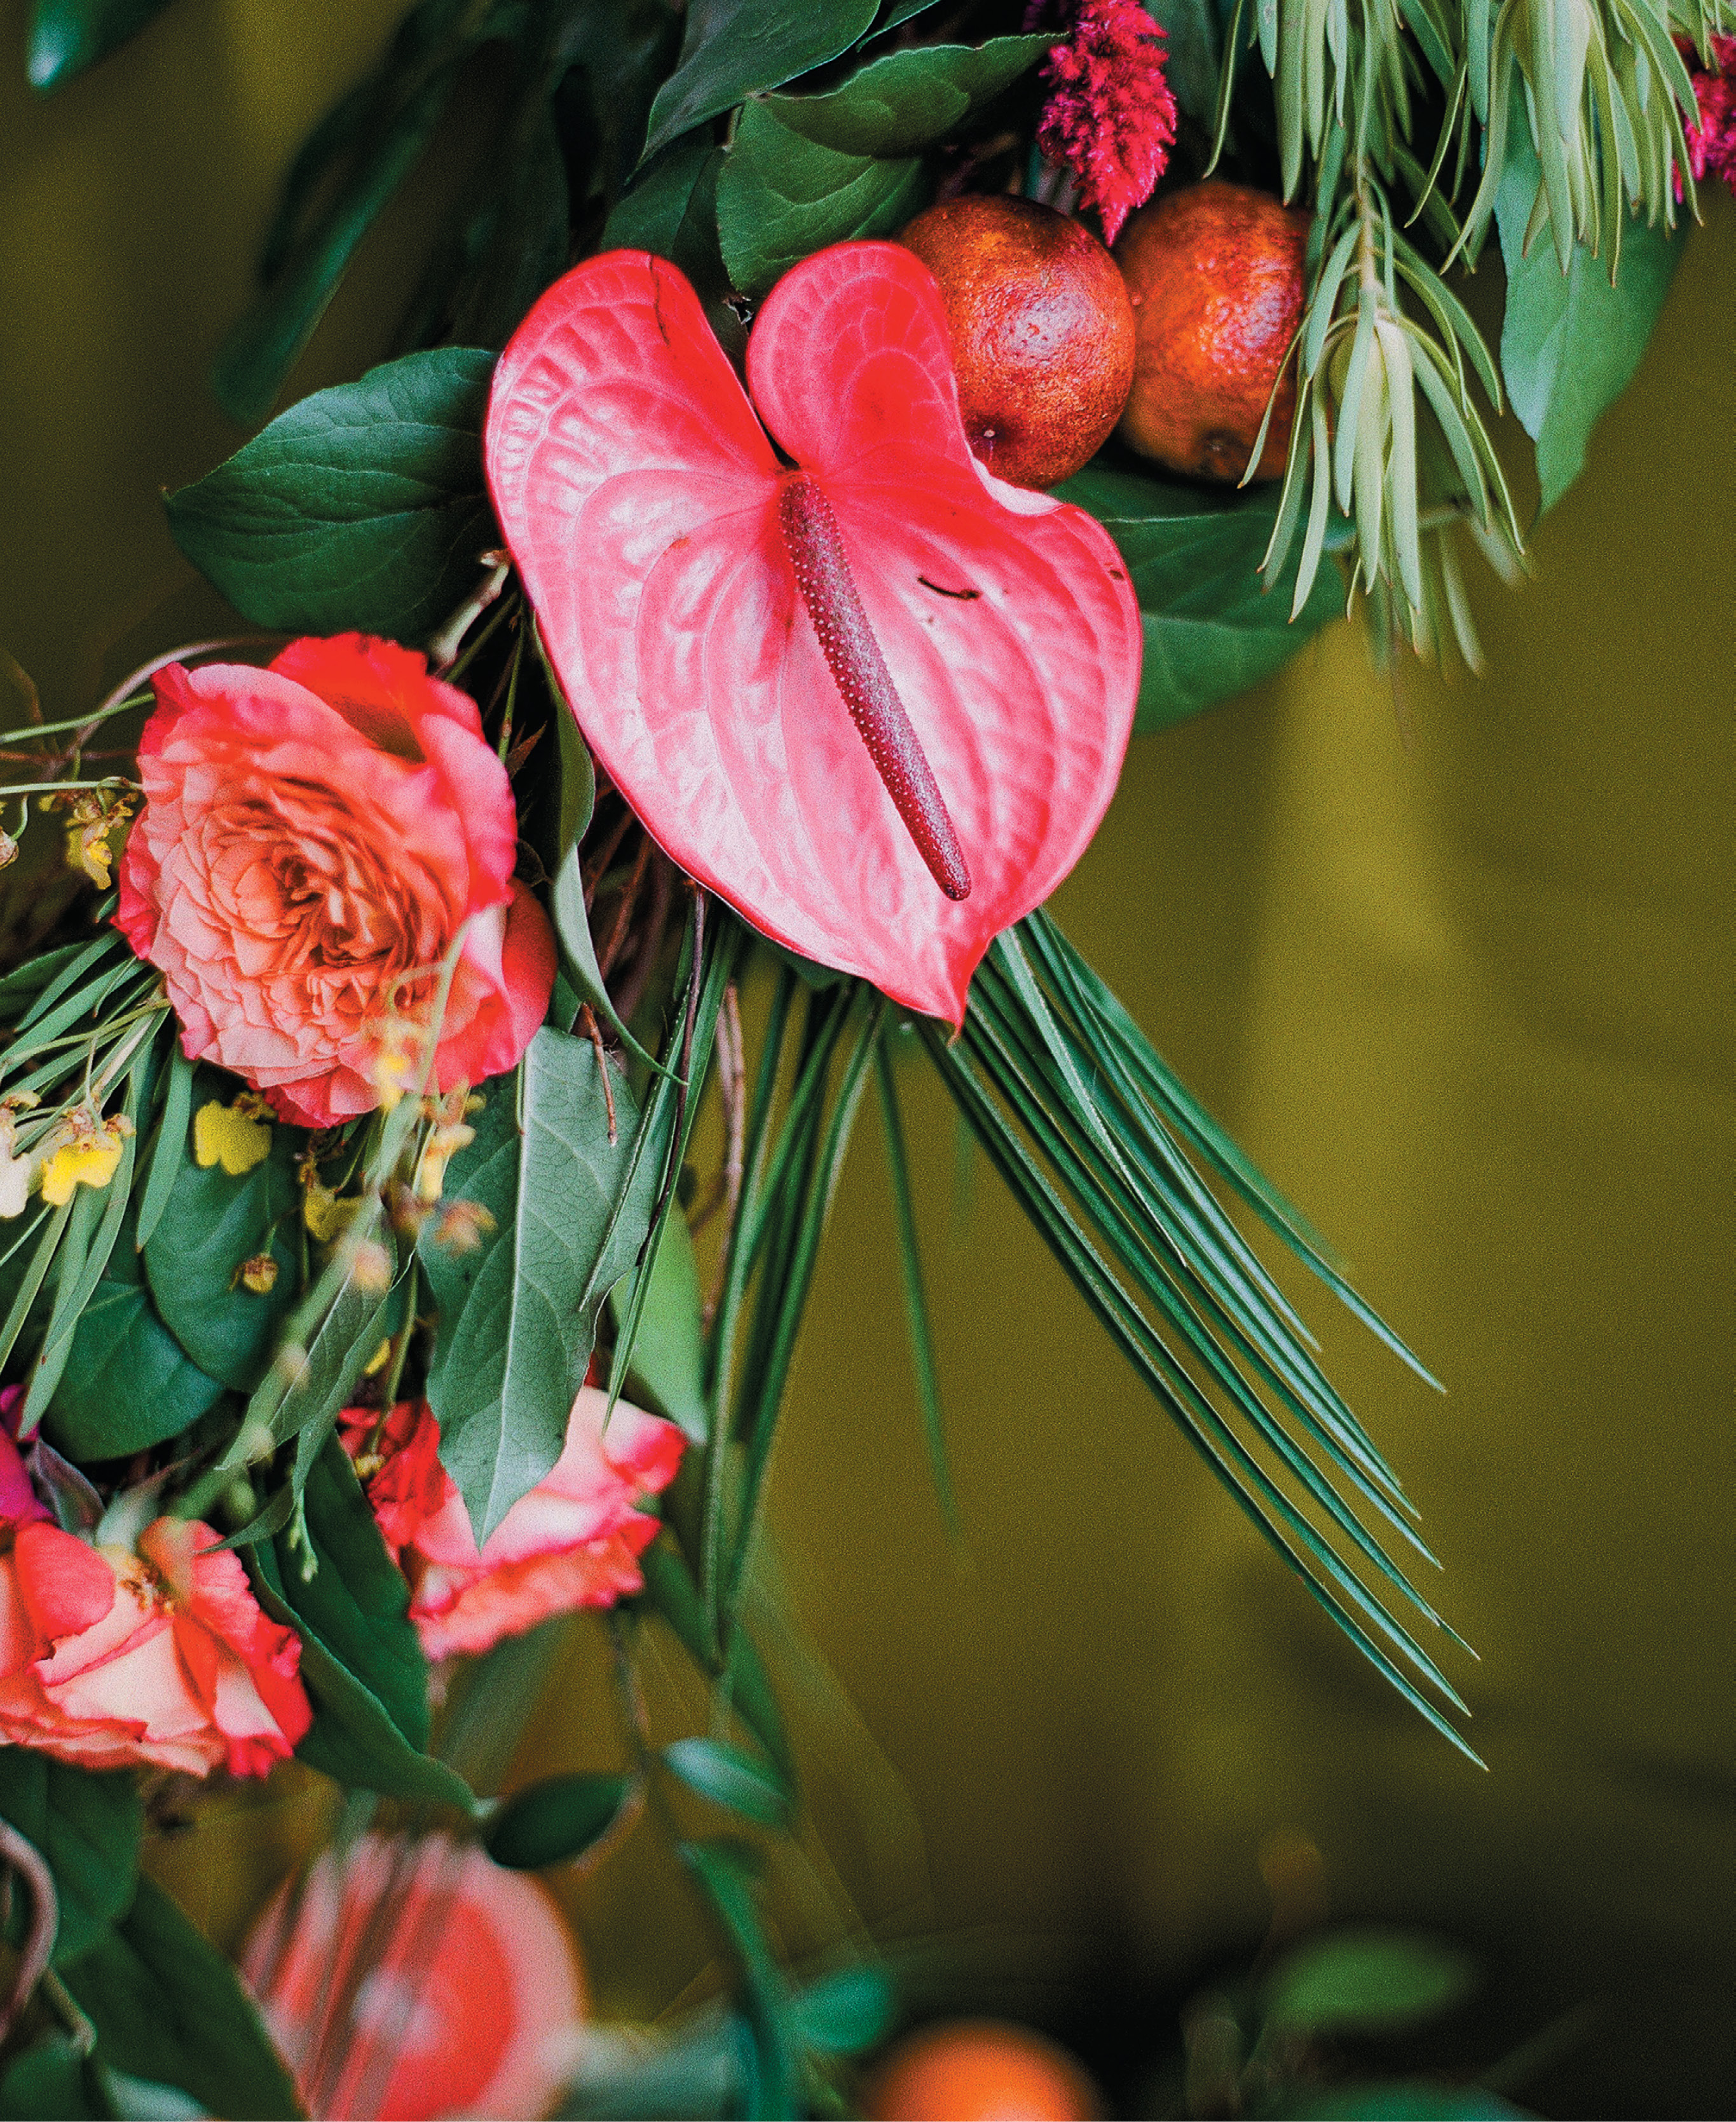 The Vault hostesses Julie Livingston and Reagan Barnes collaborated with floral designer Wimberly Fair on the party's lush, exotic flora, including anthurium, garden roses, pincushion protea, and orchids amidst Leucadendron, monstera, and palm greenery.